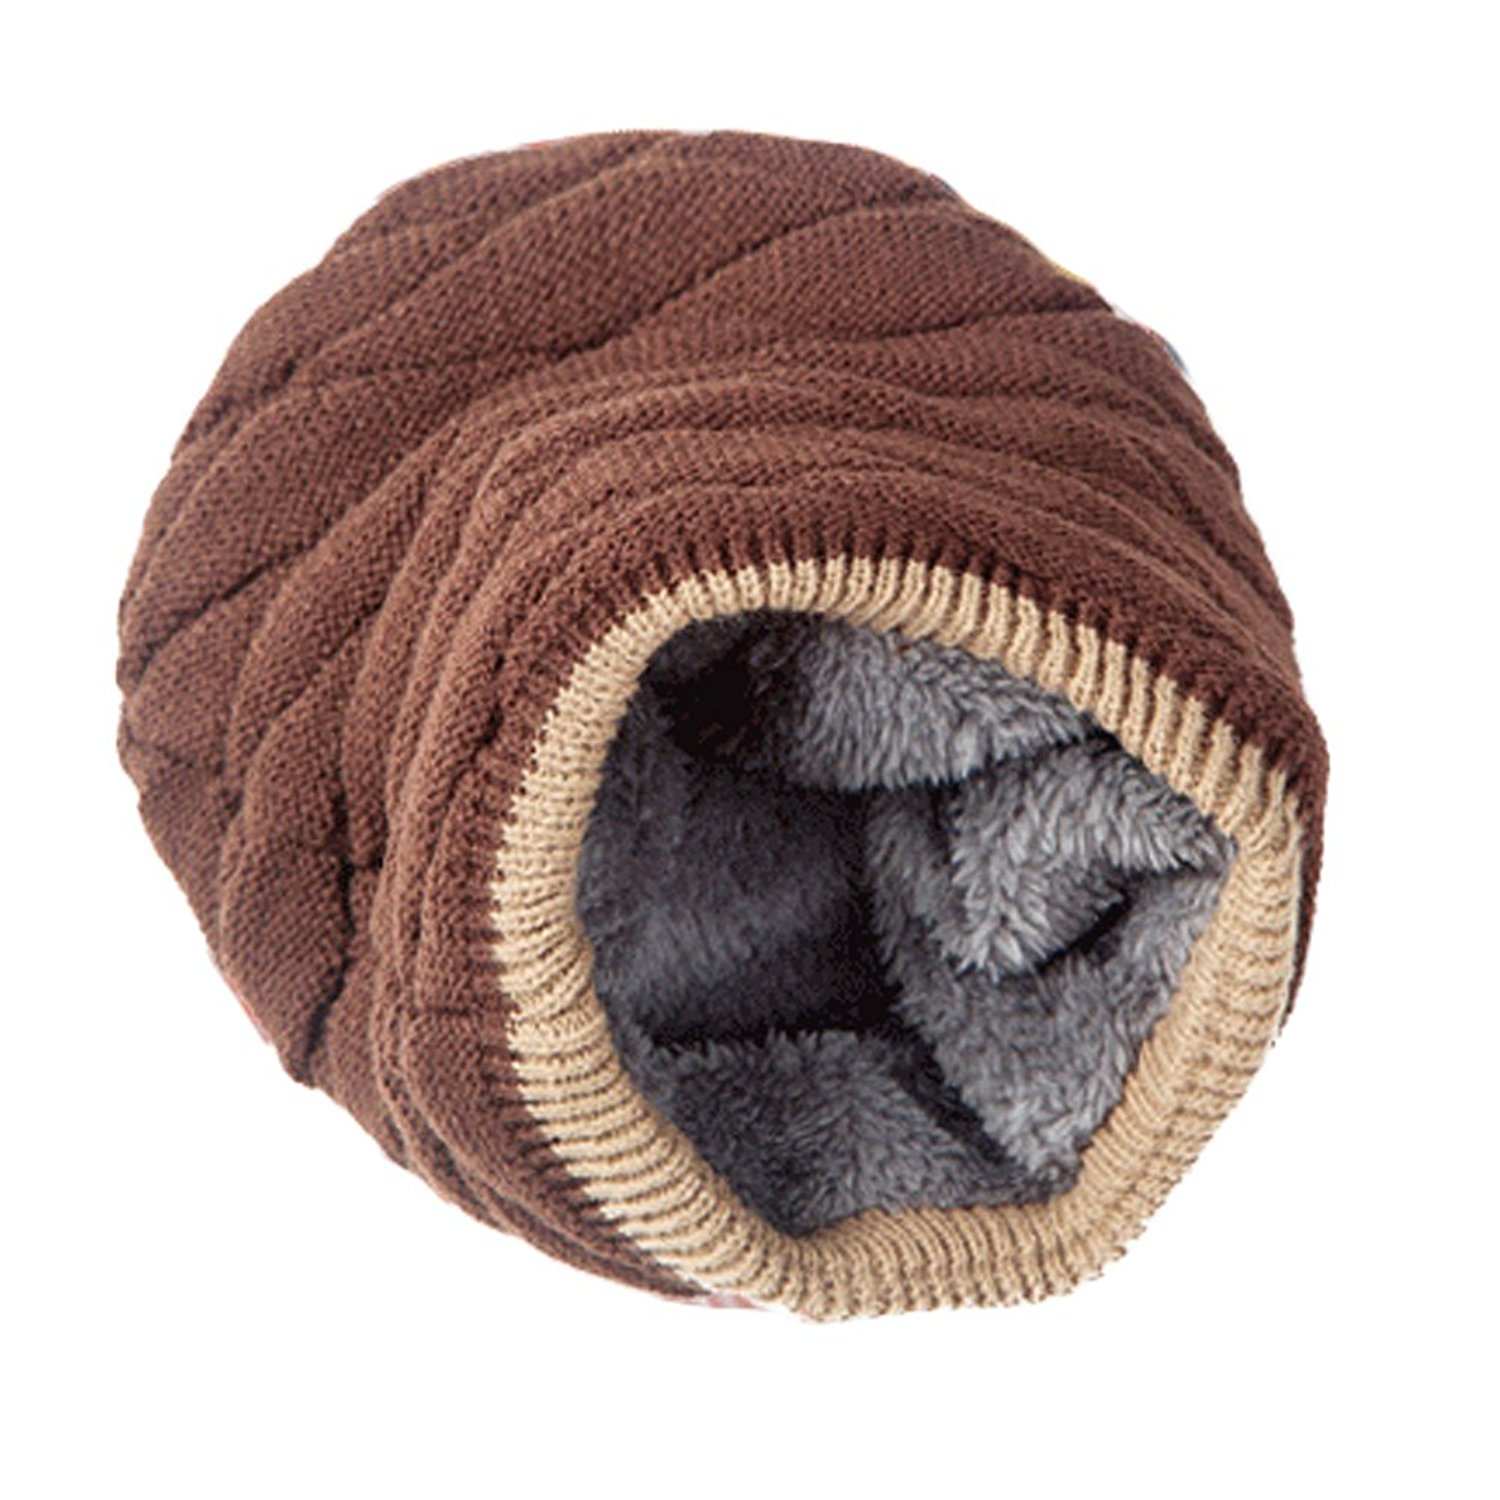 Spikerking Soft Lined Thick Knit Beanie